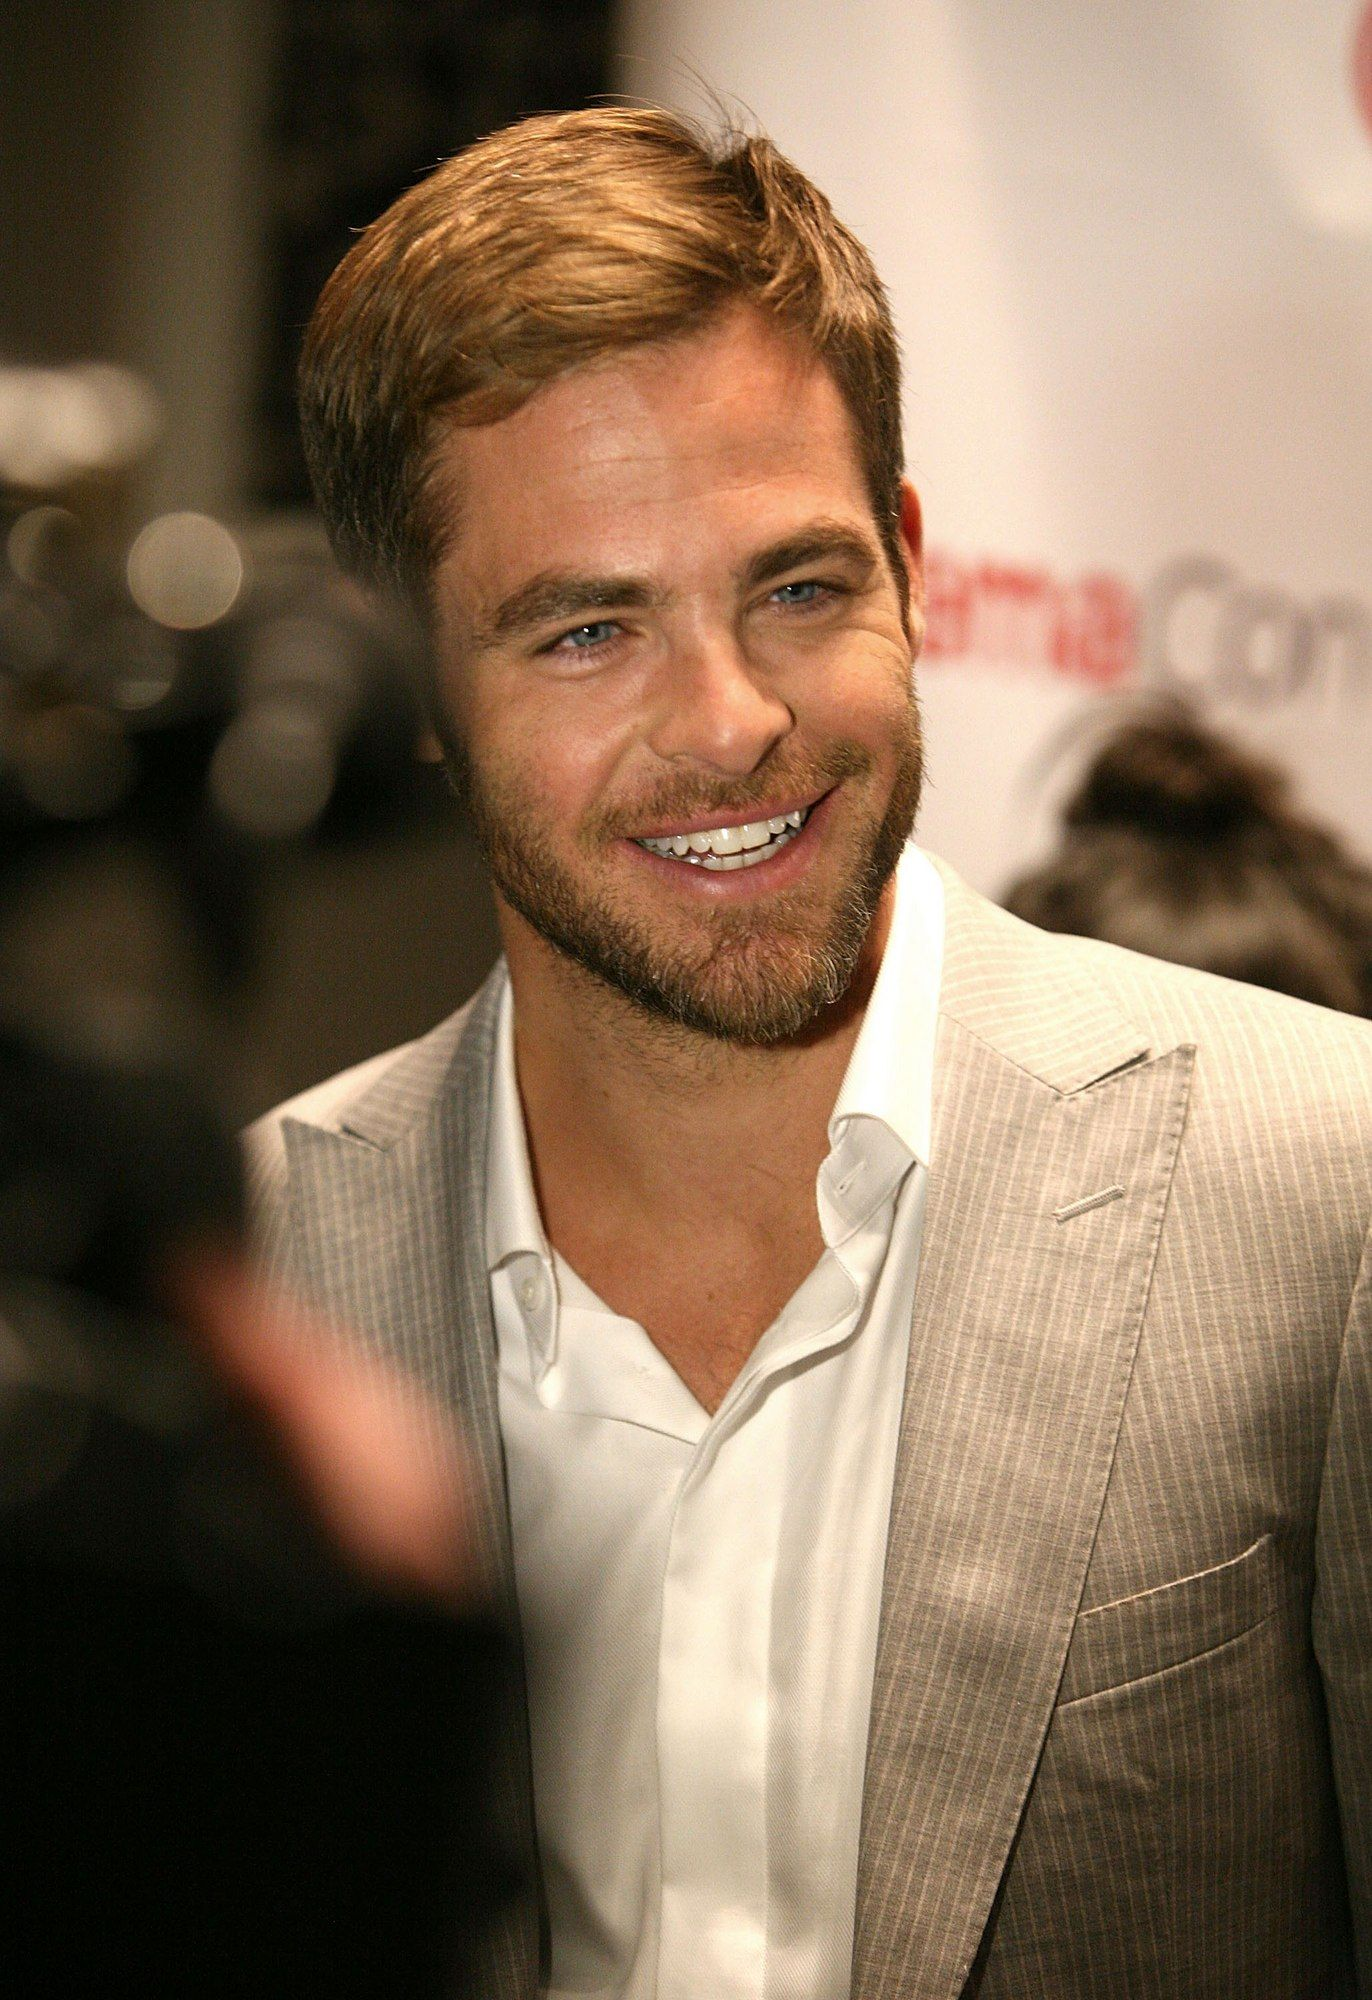 chris pine gifchris pine gif, chris pine 2016, chris pine tumblr, chris pine 2017, chris pine height, chris pine vk, chris pine photoshoot, chris pine films, chris pine gif hunt, chris pine wife, chris pine wdw, chris pine wiki, chris pine sing, chris pine кинопоиск, chris pine imdb, chris pine tom hardy, chris pine news, chris pine instagram, chris pine and gal gadot, chris pine late late show